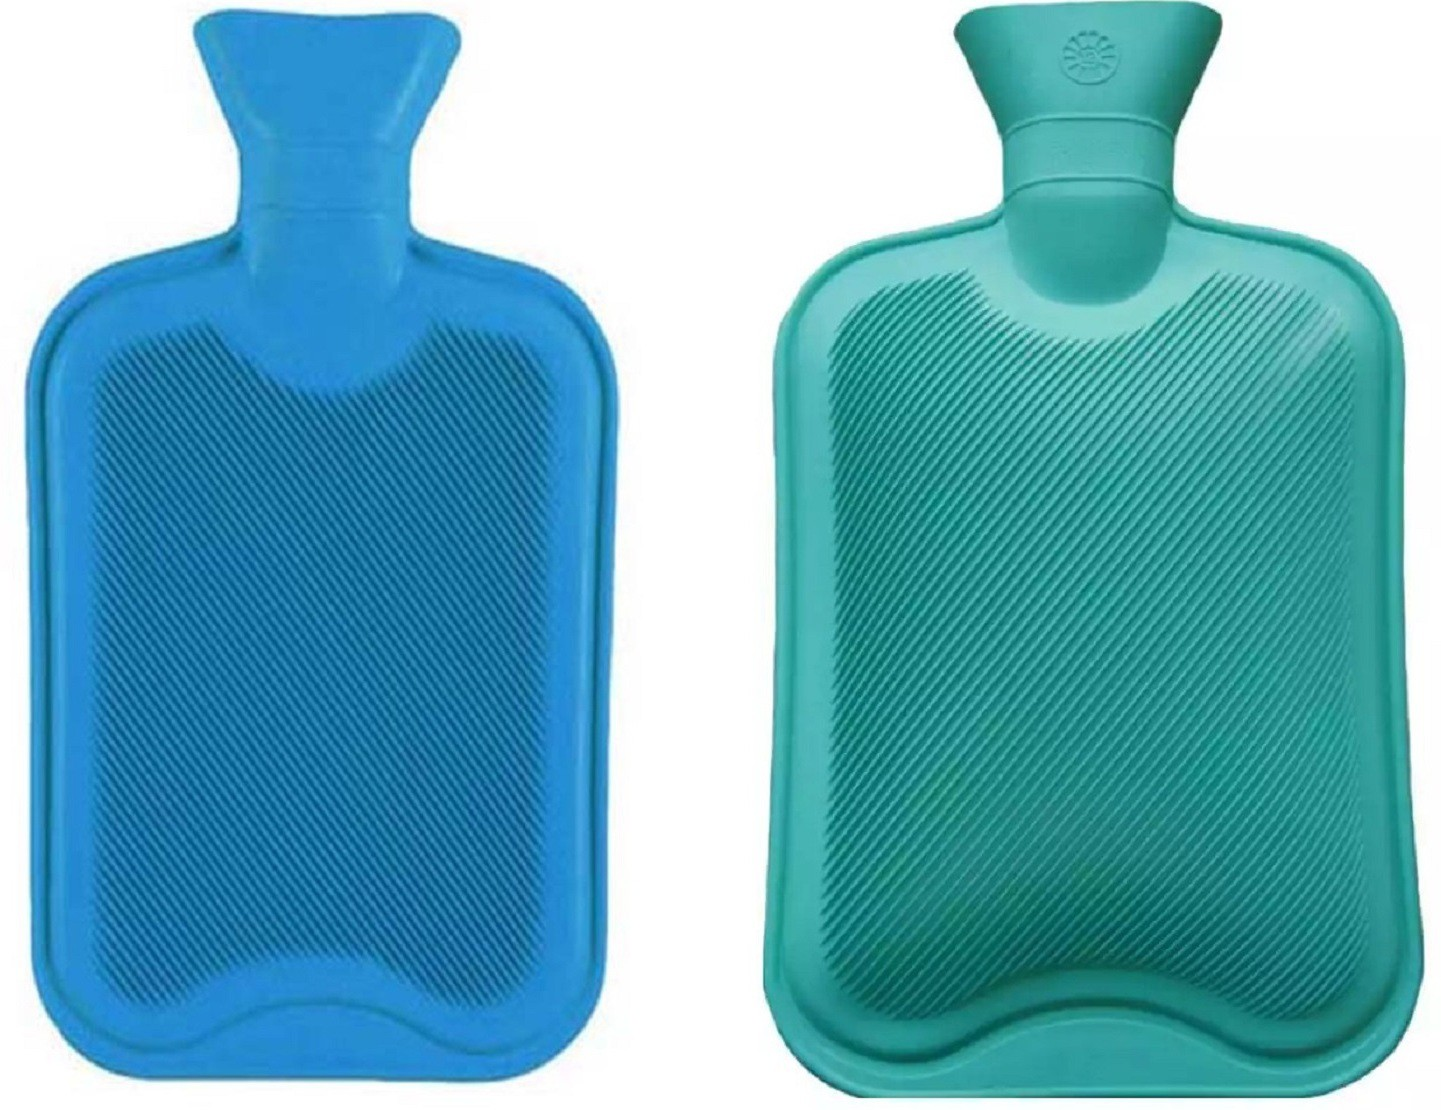 Ramco Combo Super Deluxe Non-electrical 3 L Hot Water Bag(Blue, Green)